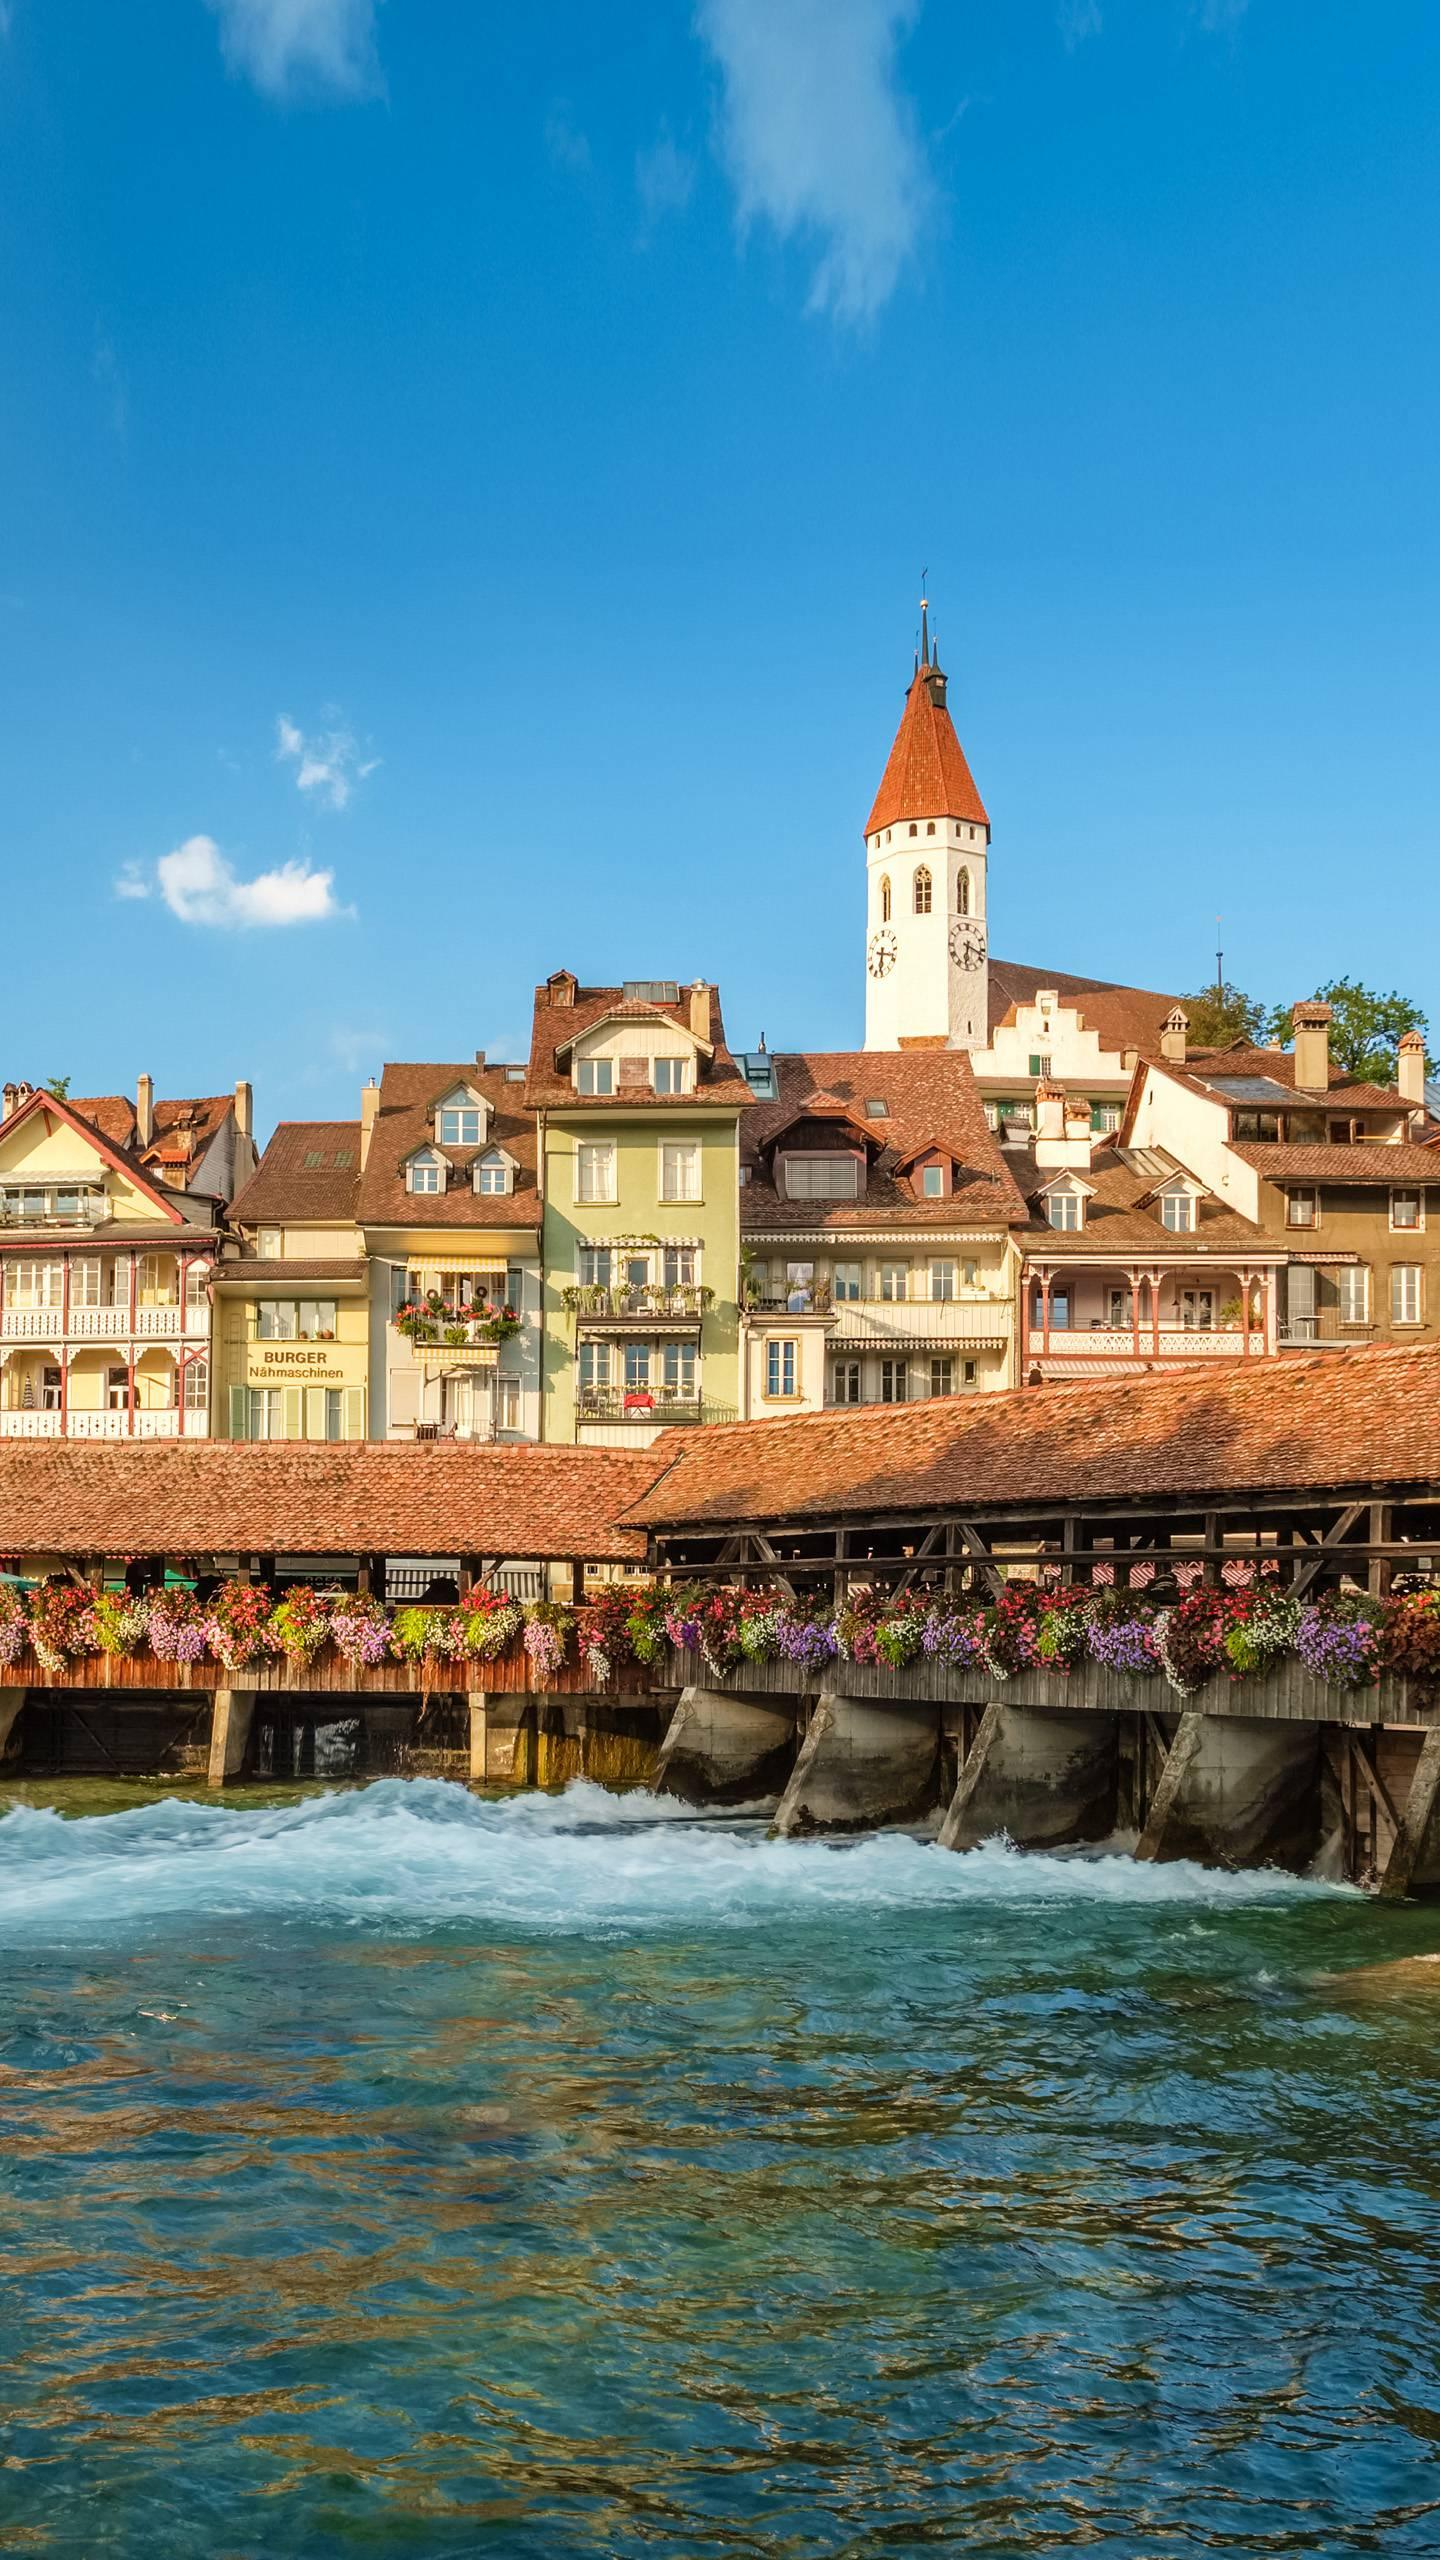 Switzerland - Thun. Located on the shores of Lake Thun in Switzerland, it is a small town with a castle, an old town and a lake and mountains.